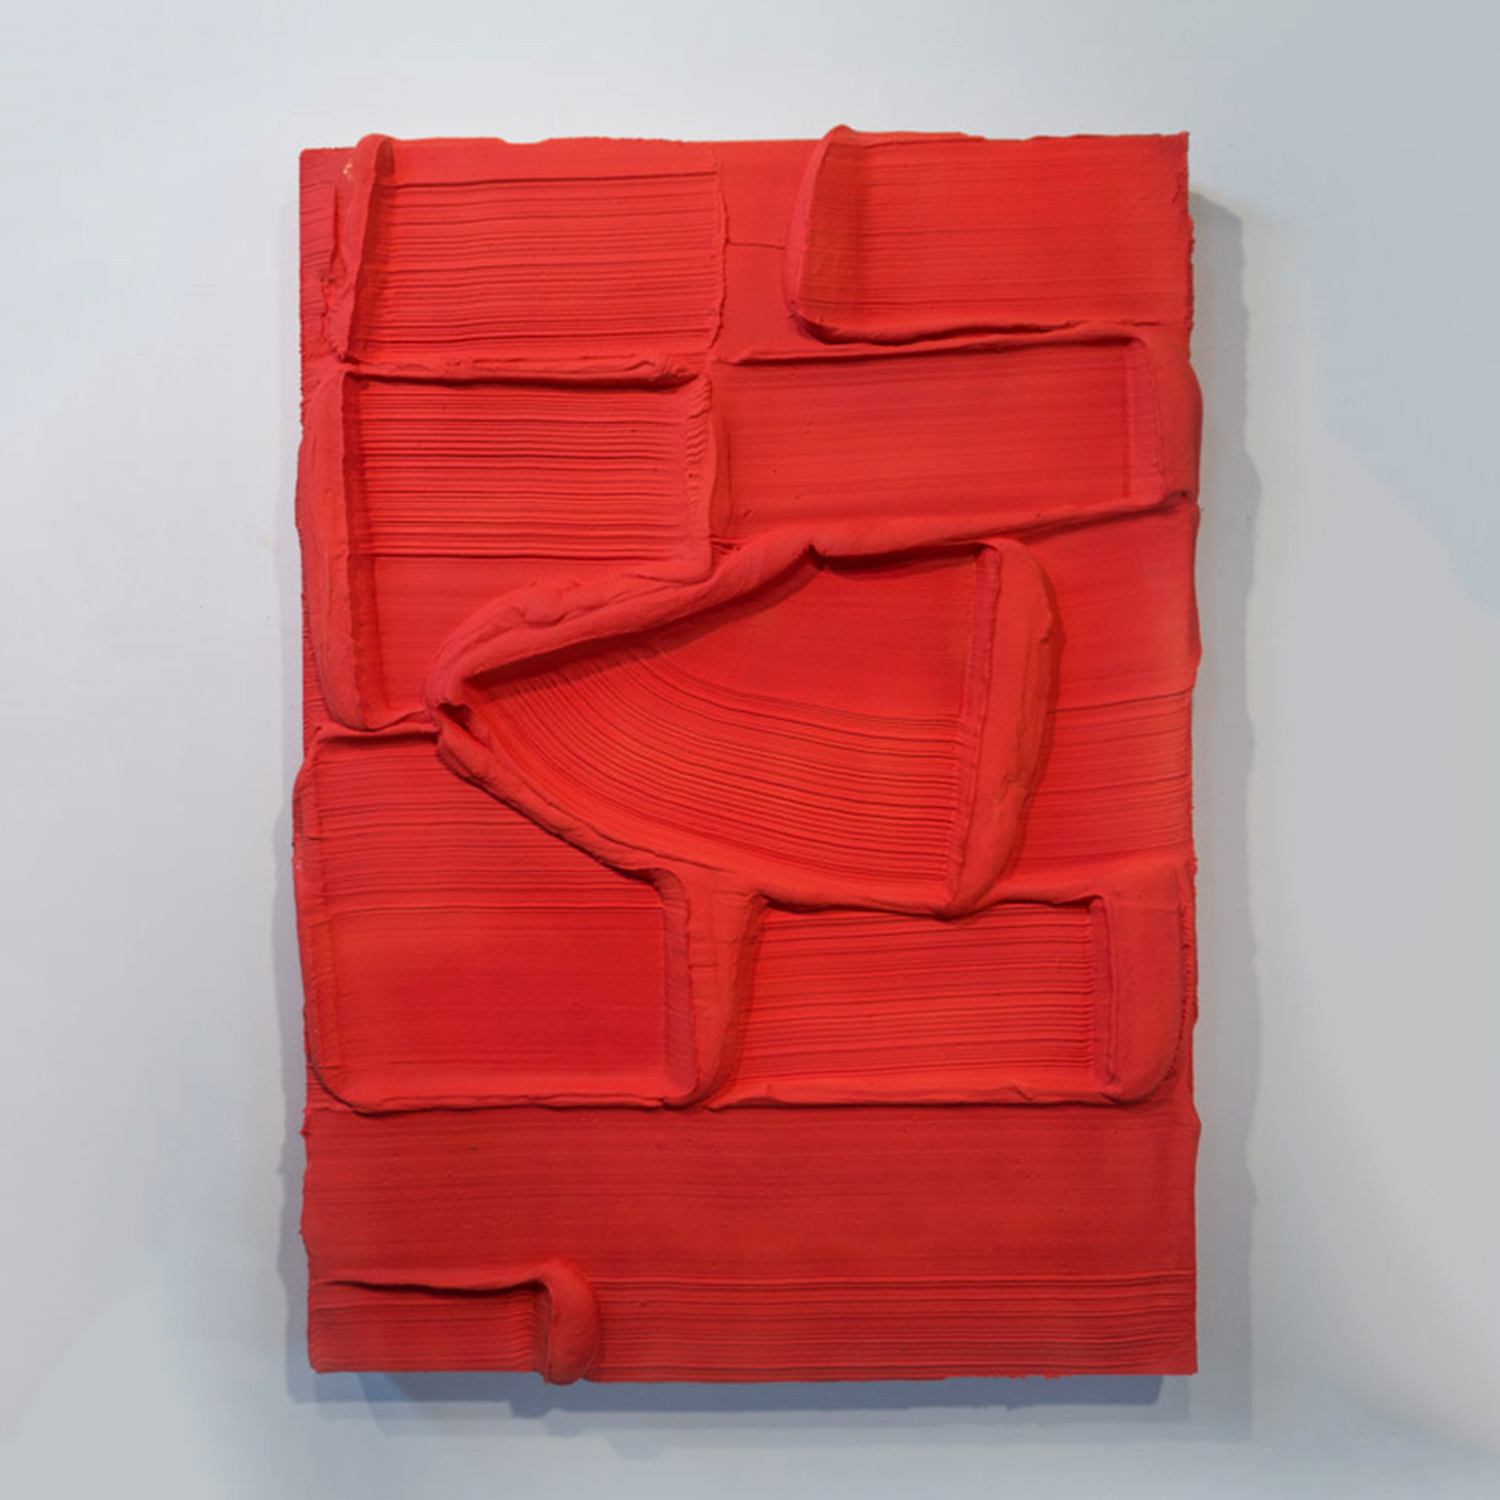 32 Red Earth  Mixed media 40 x 56 x 5.5 inches 102 x 142 x 14 cm  2018